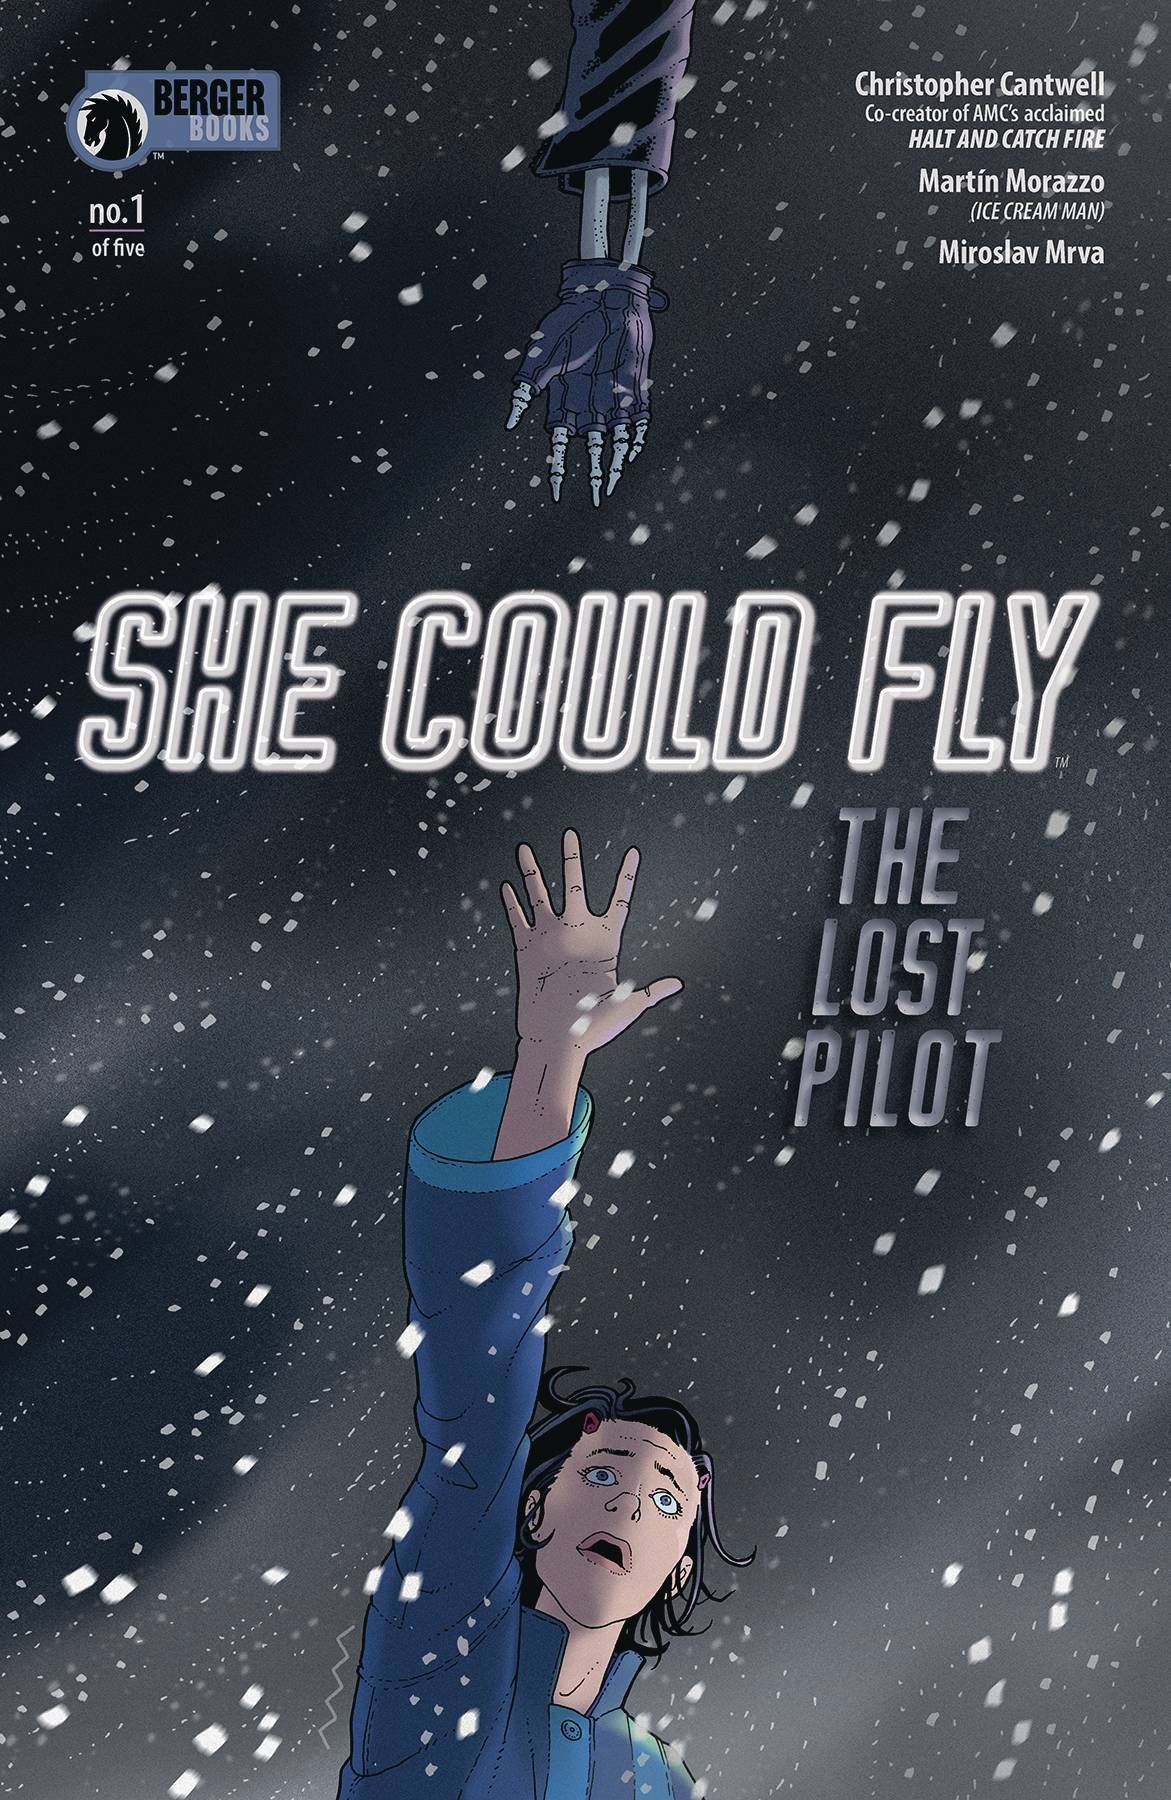 SHE COULD FLY LOST PILOT 1 of 5.jpg